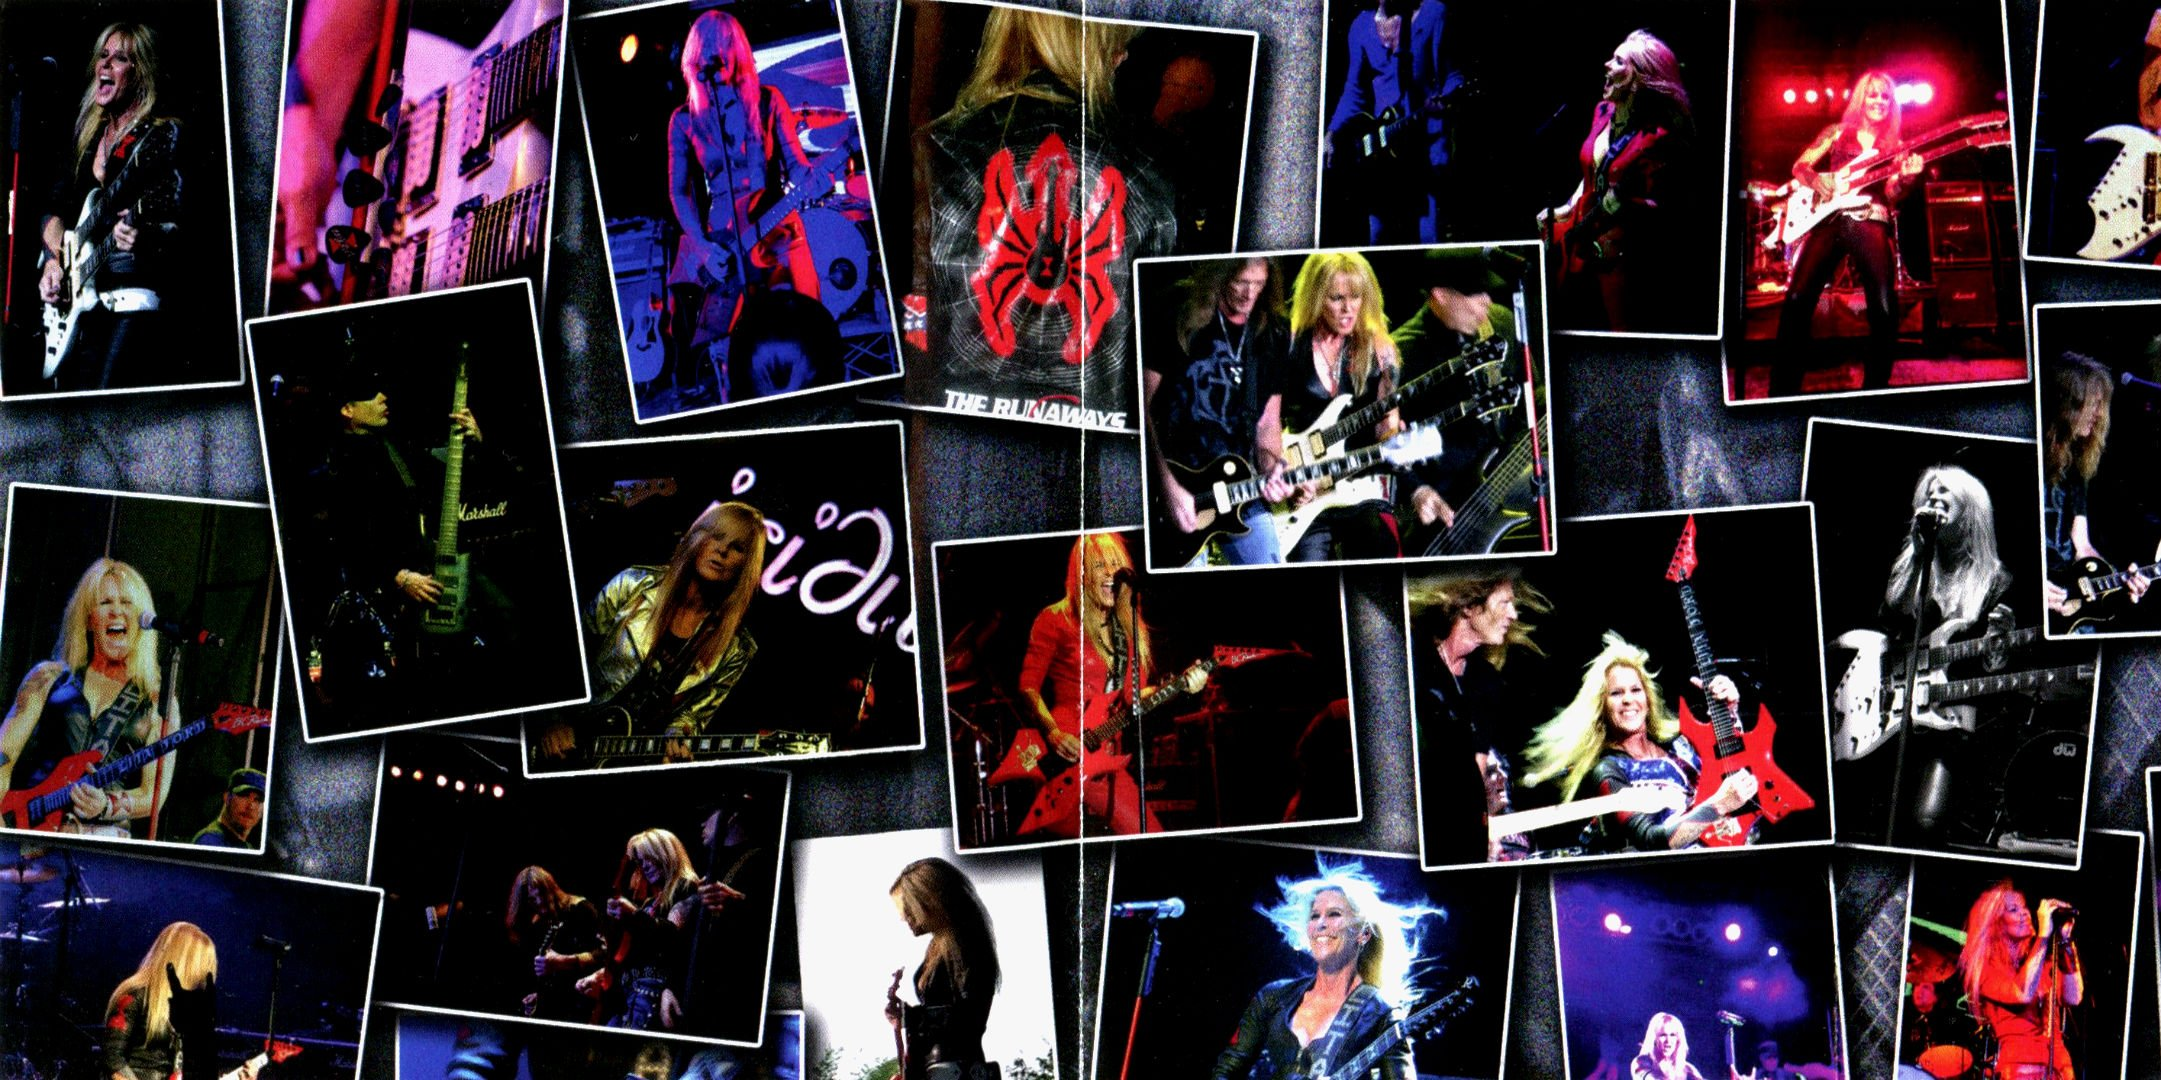 LITA FORD Heavy Metal Hard Rock Babe Poster Concert Collage Wallpaper